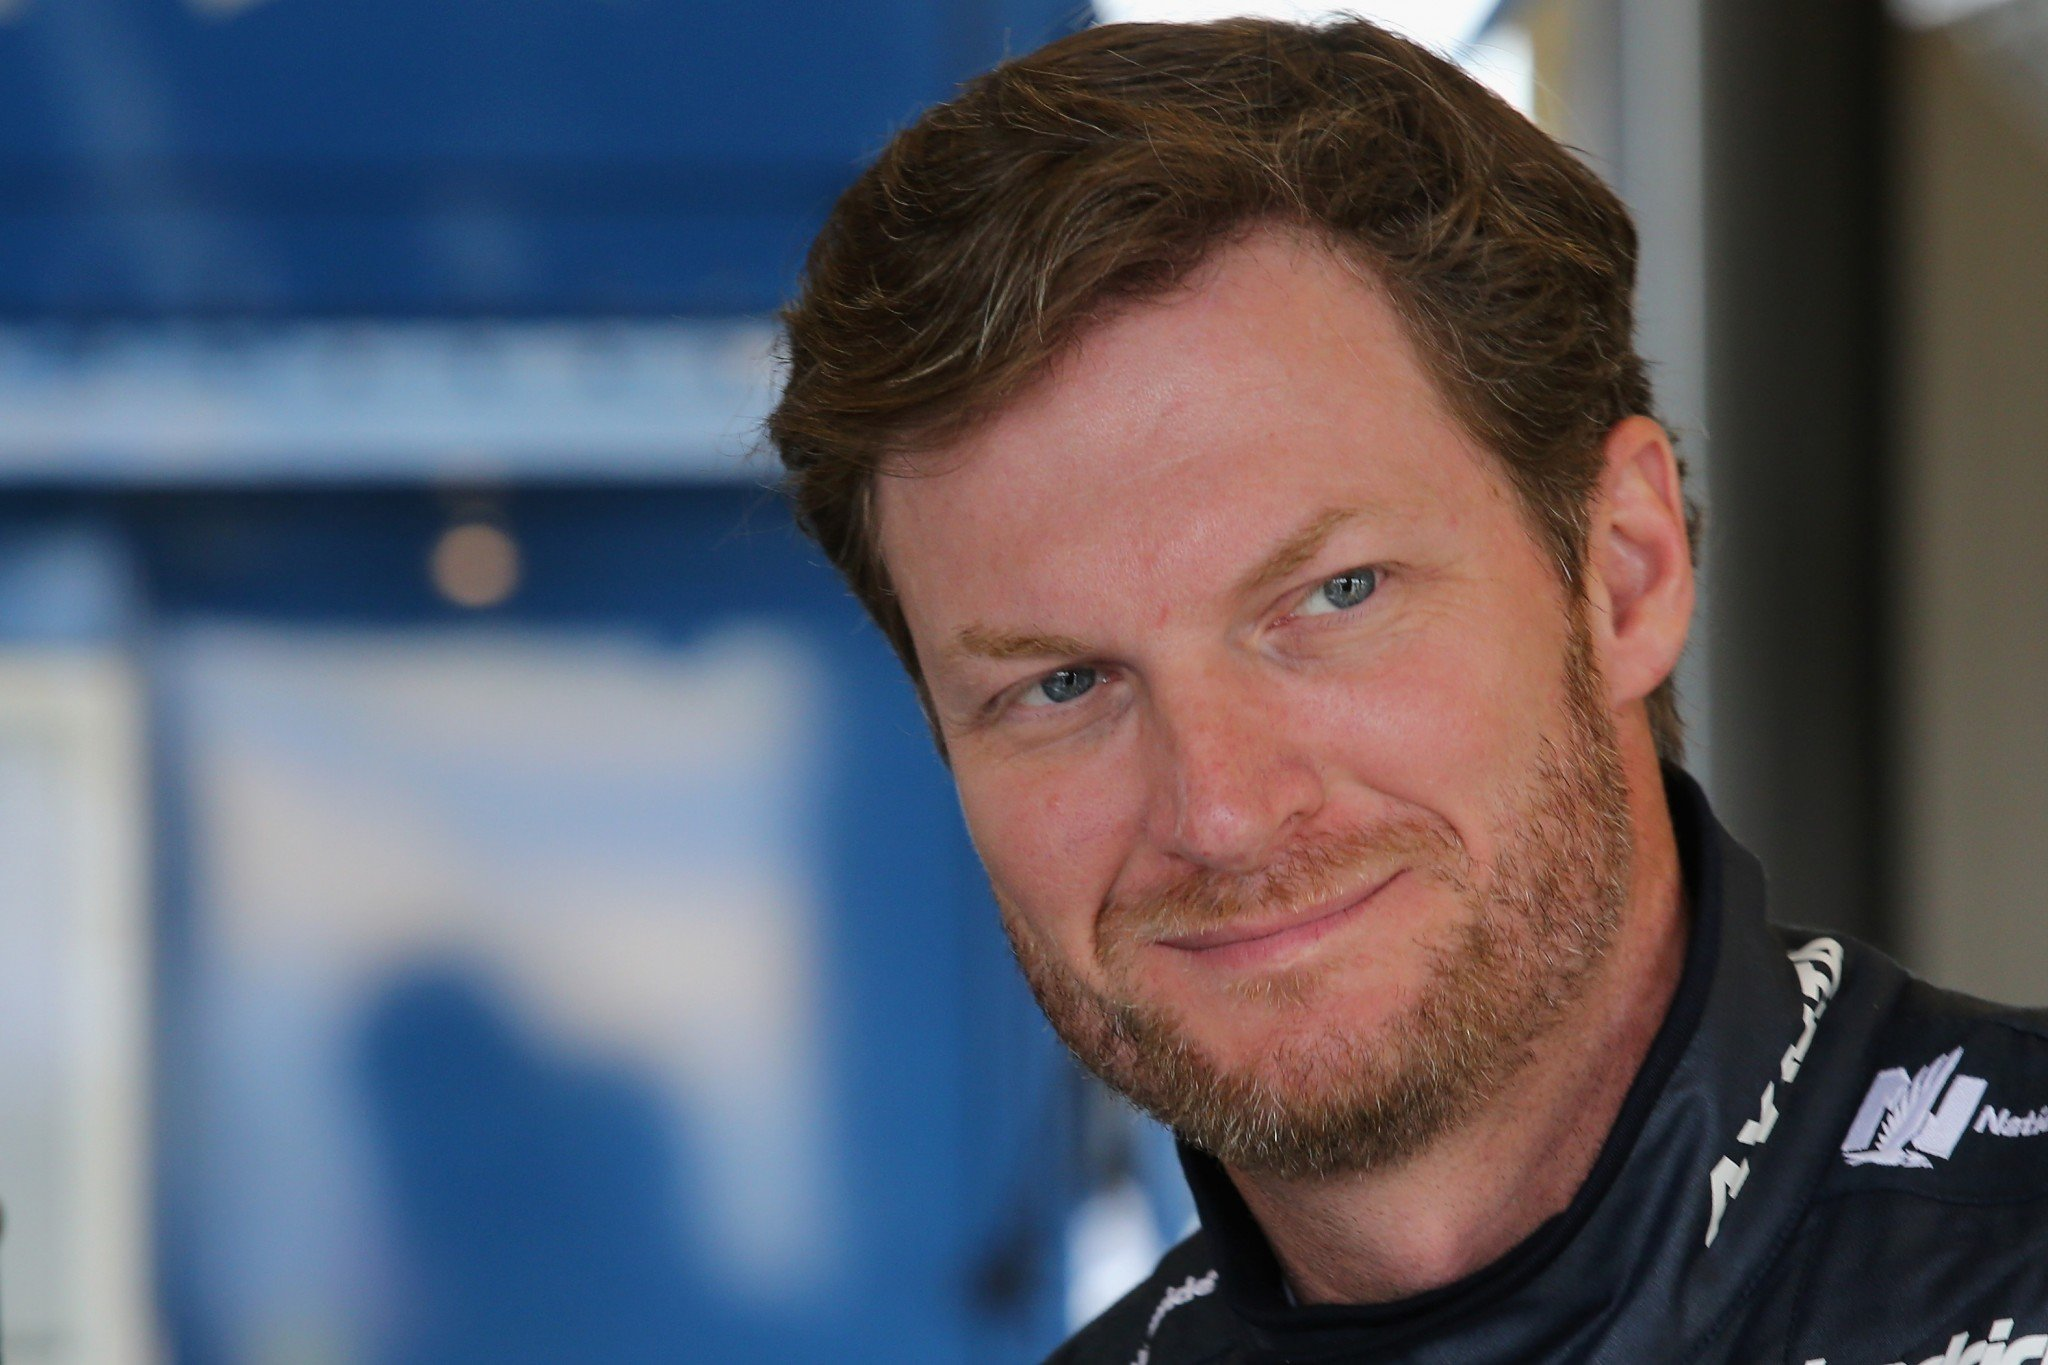 Dale Earnhardt Jr. will miss his third race of the season at Pocono (Getty).